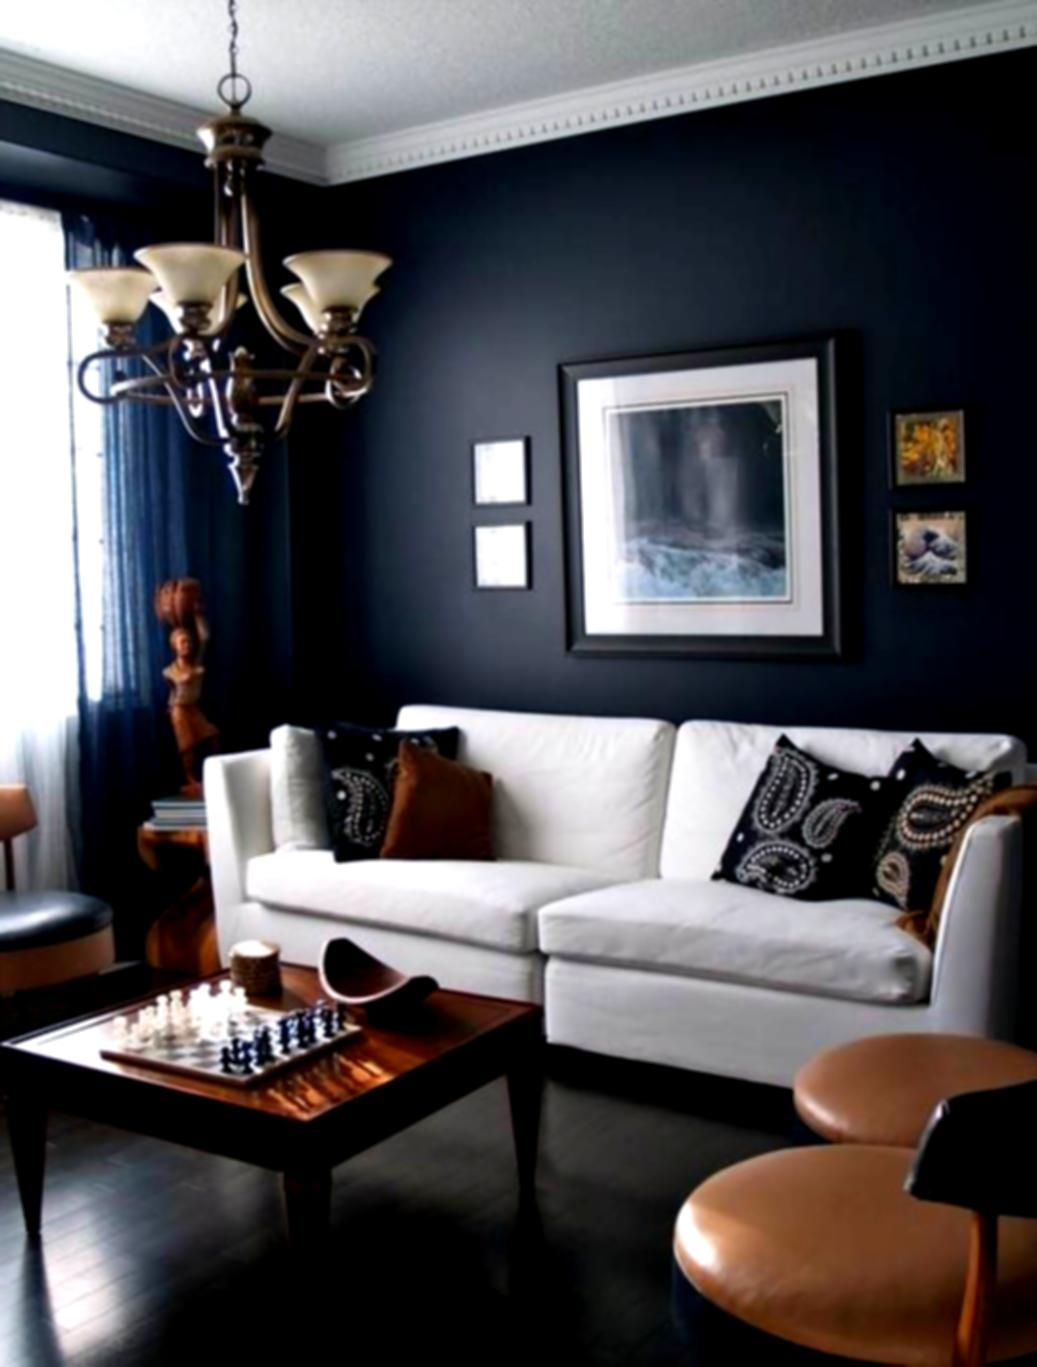 powerfull living room ideas for your project selection see more inspirations livingroomideas interiordesign interiordesignideas homeinteri - Simple House Interior Living Room